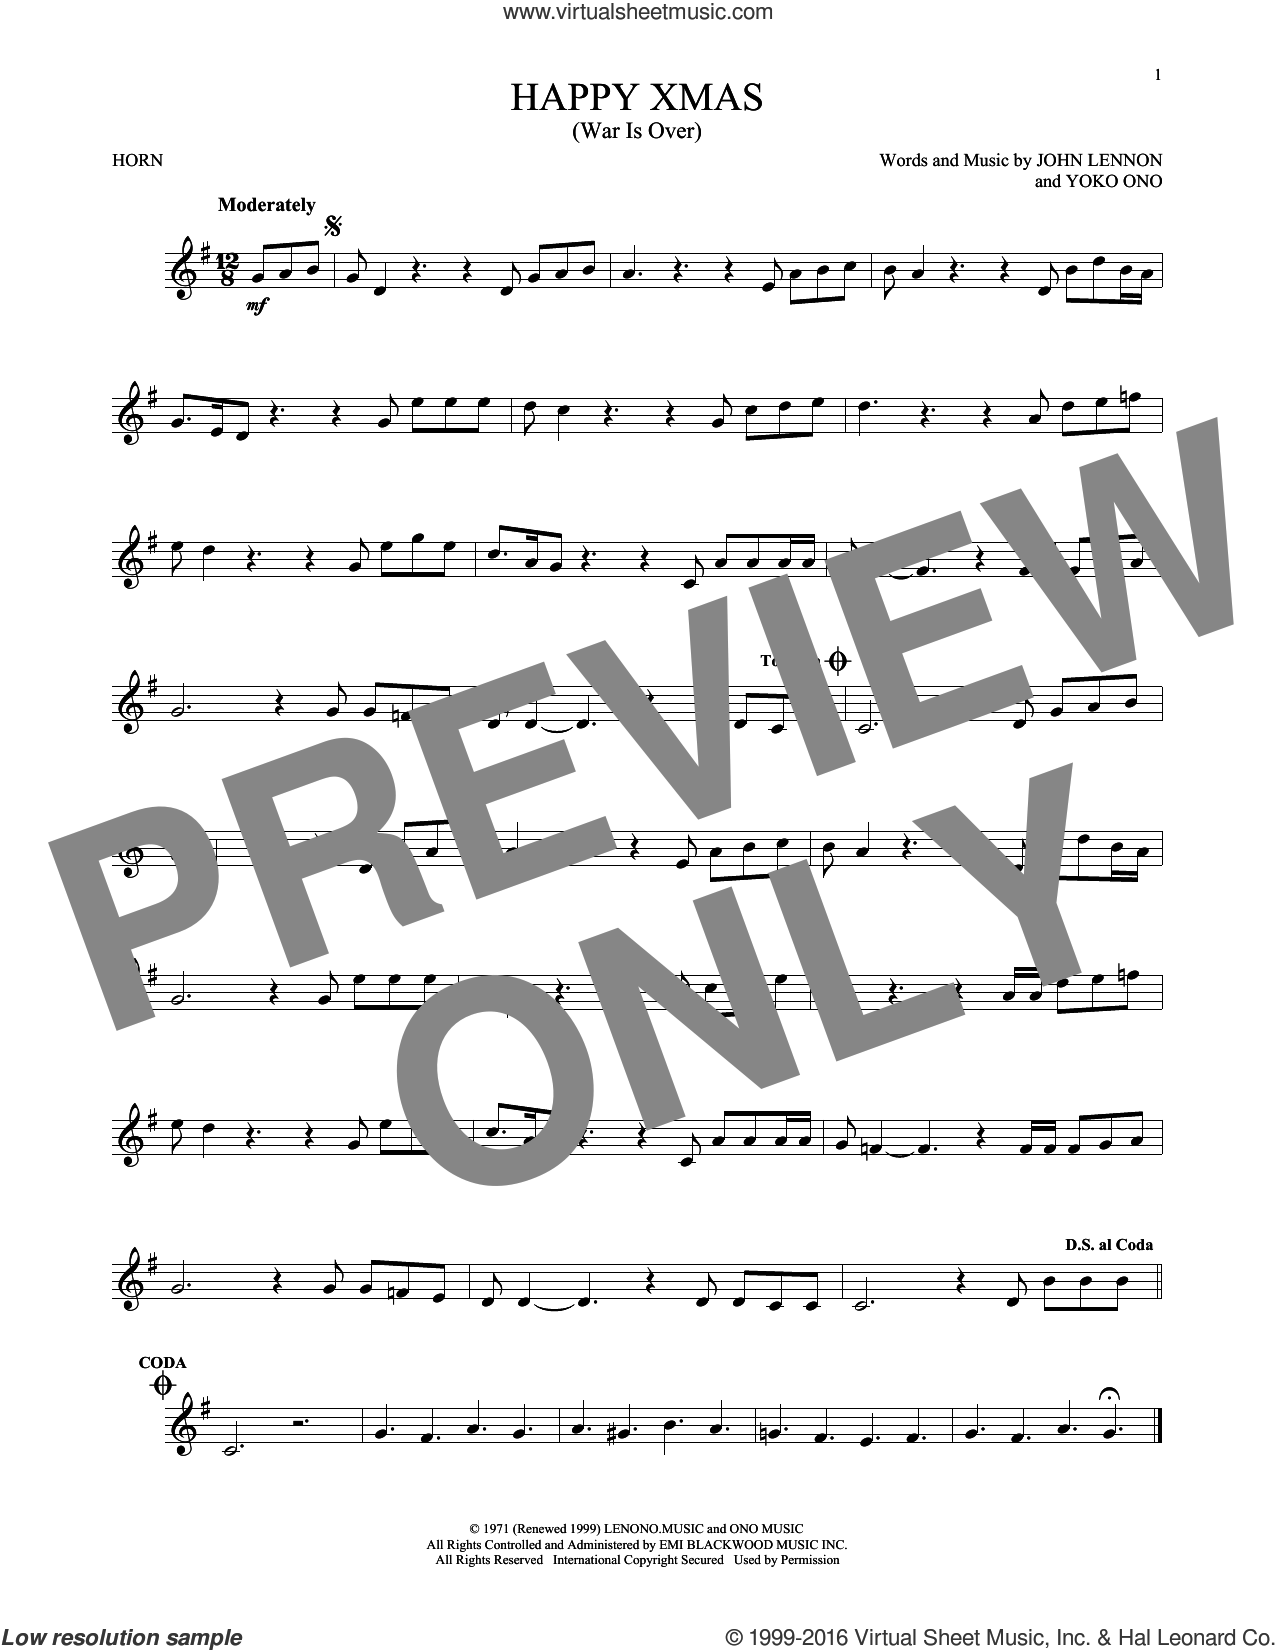 Happy Xmas (War Is Over) sheet music for horn solo by John Lennon and Yoko Ono, intermediate skill level